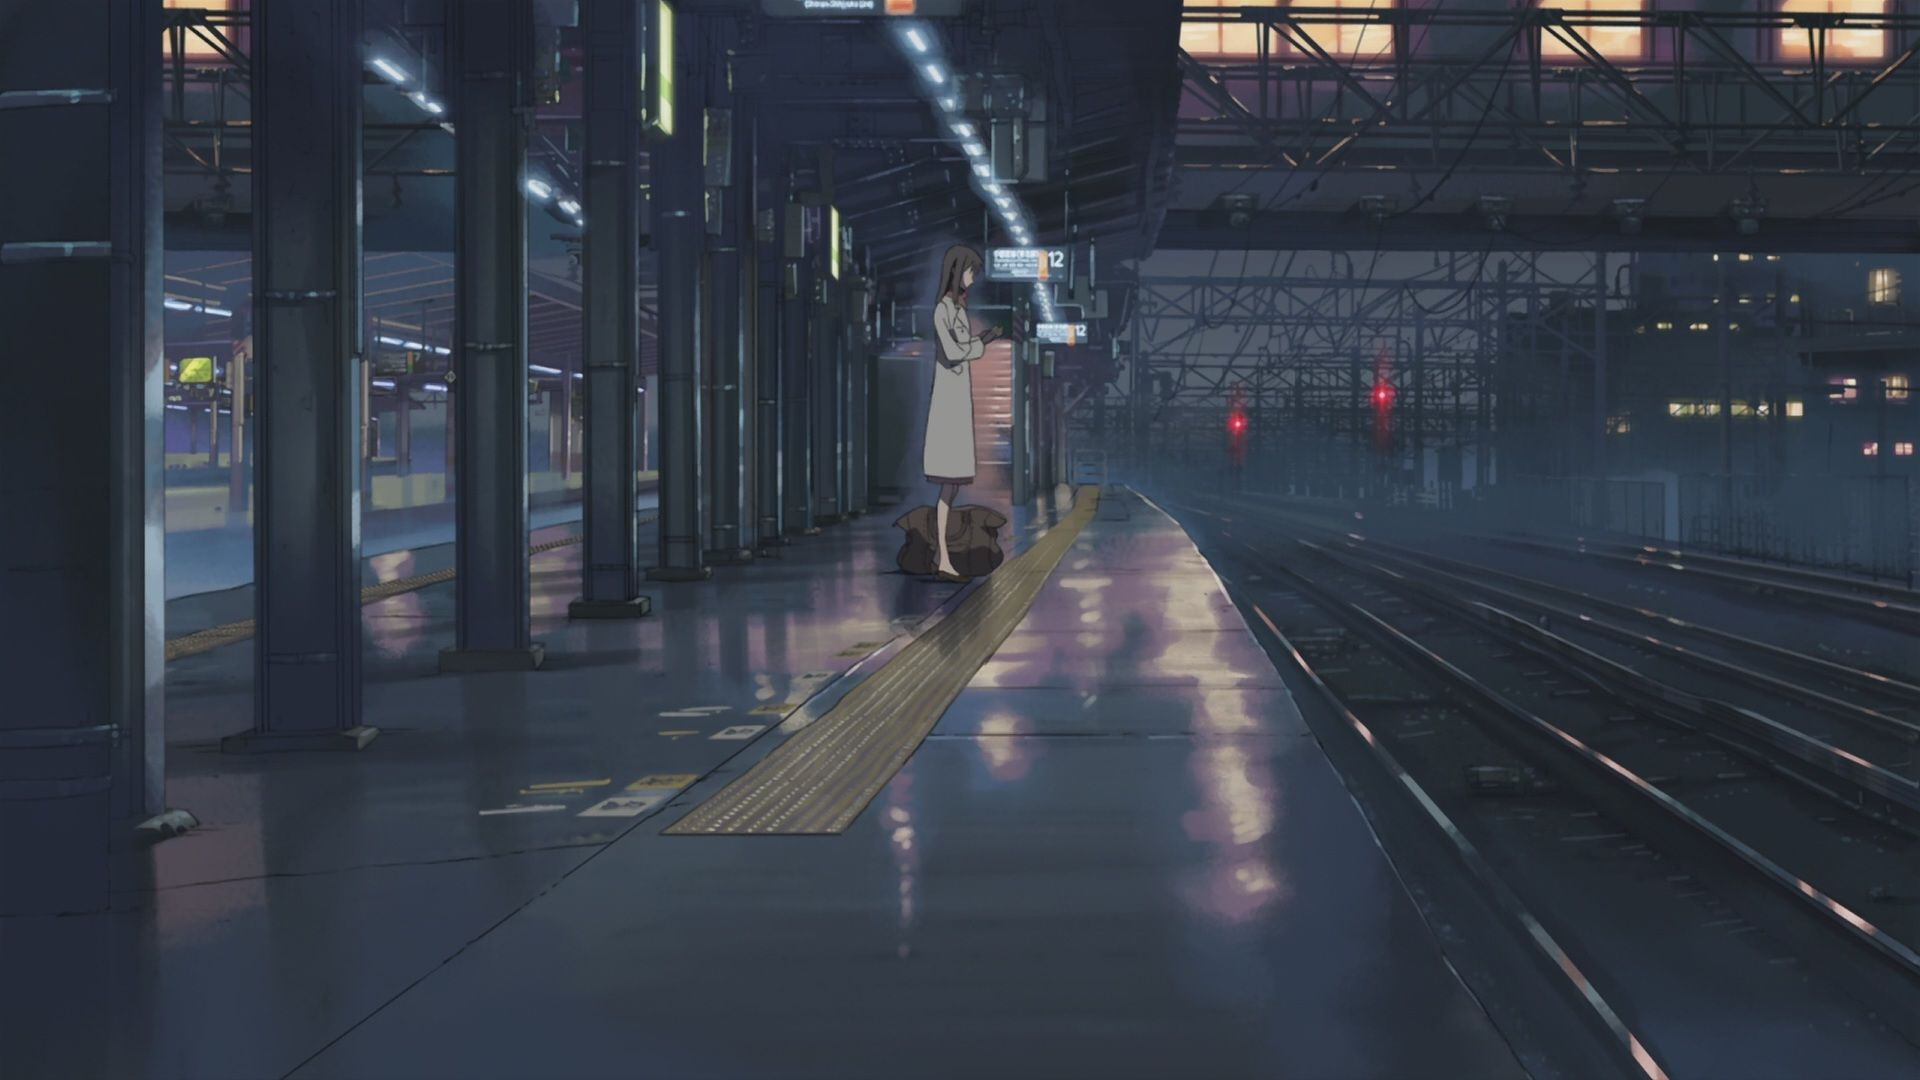 Moving Lo-Fi Wallpapers - Top Free Moving Lo-Fi Backgrounds